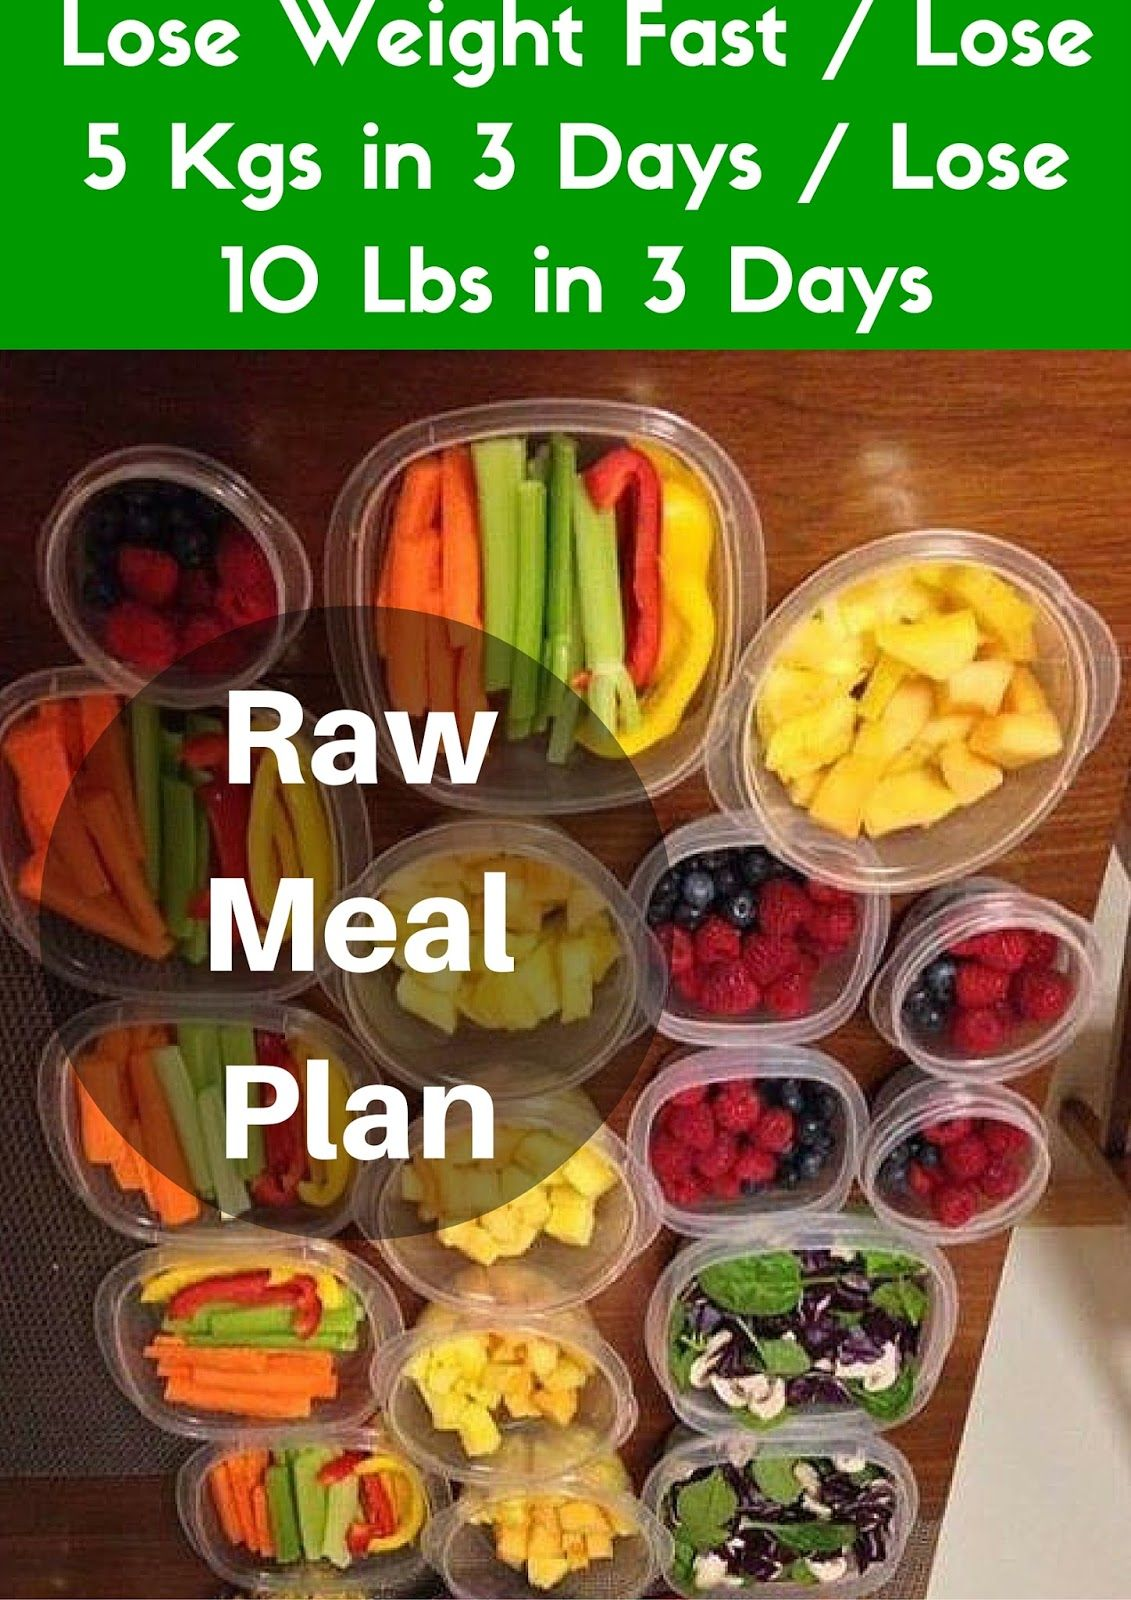 6 meals per day to lose weight